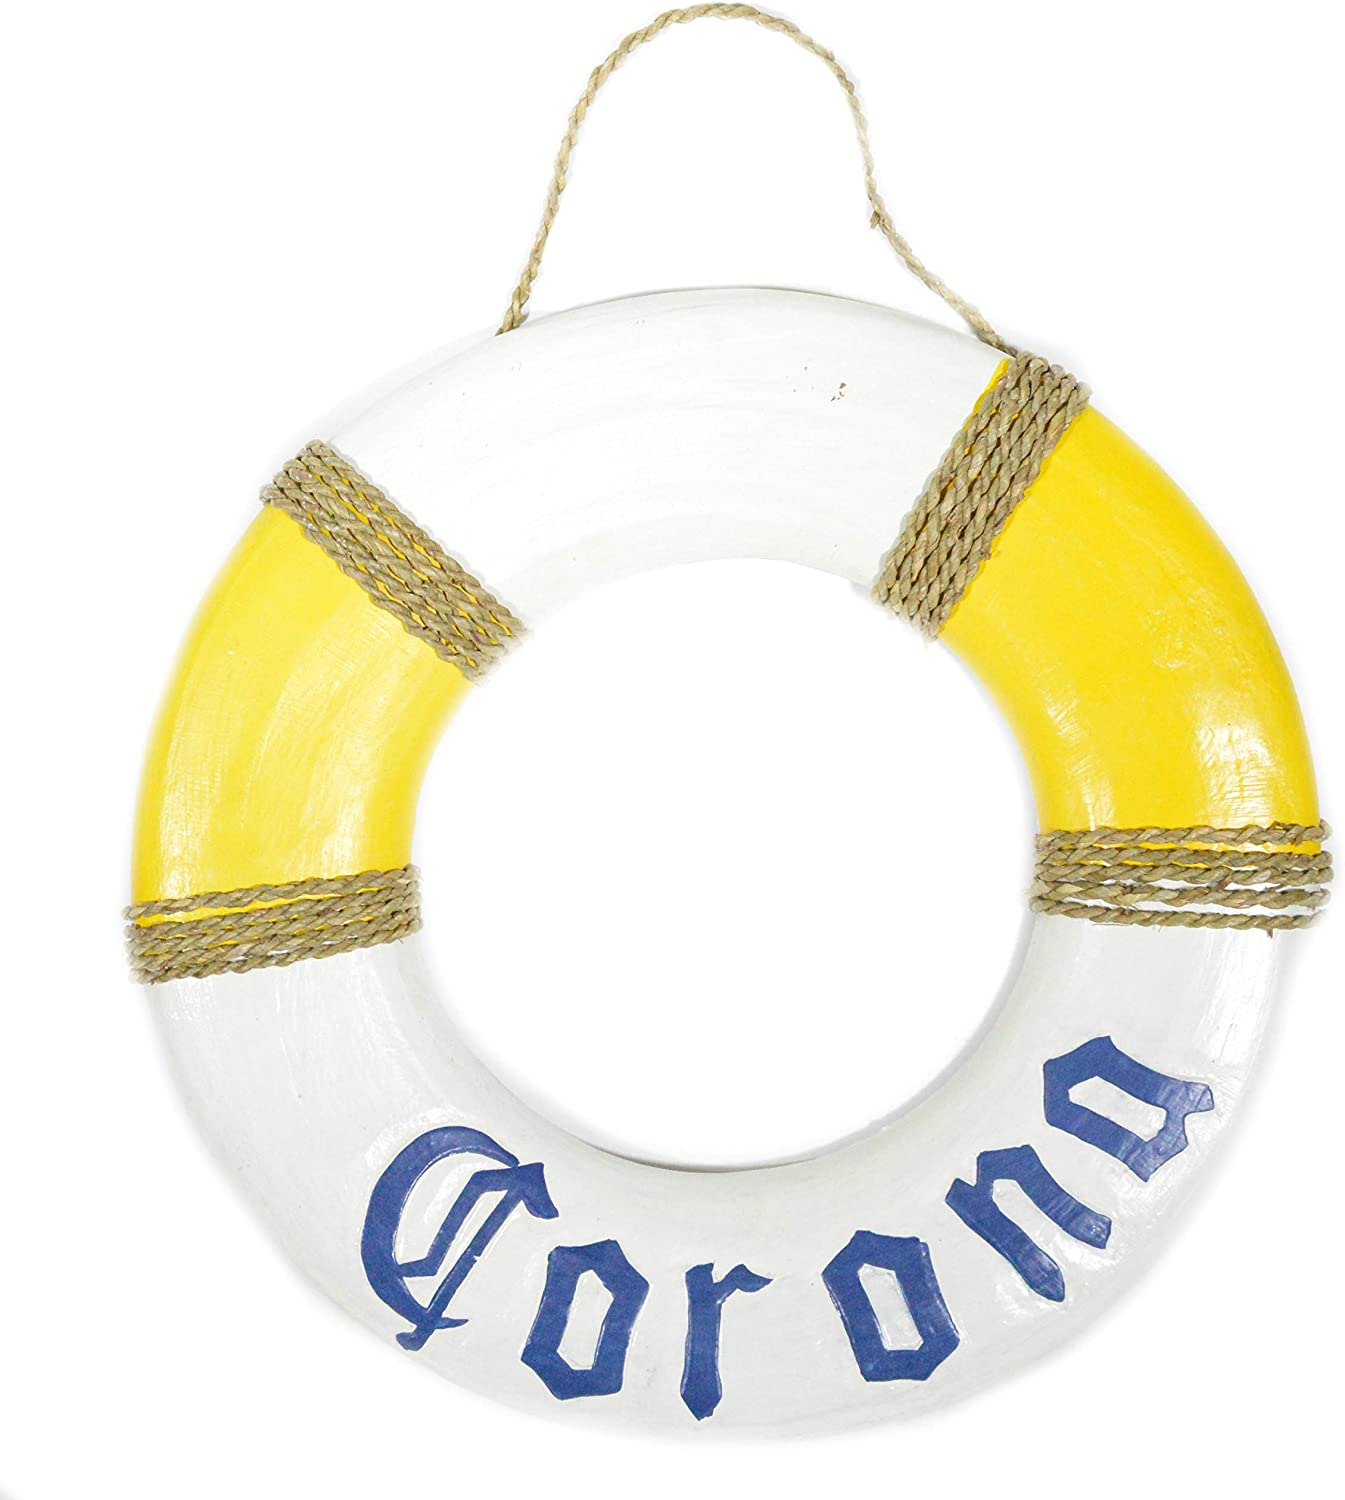 Hand Carved Blue Letters CORONA Beer Life Ring Buoy Life Saver Wooden Wall Hanging Art Sign Tiki Bar